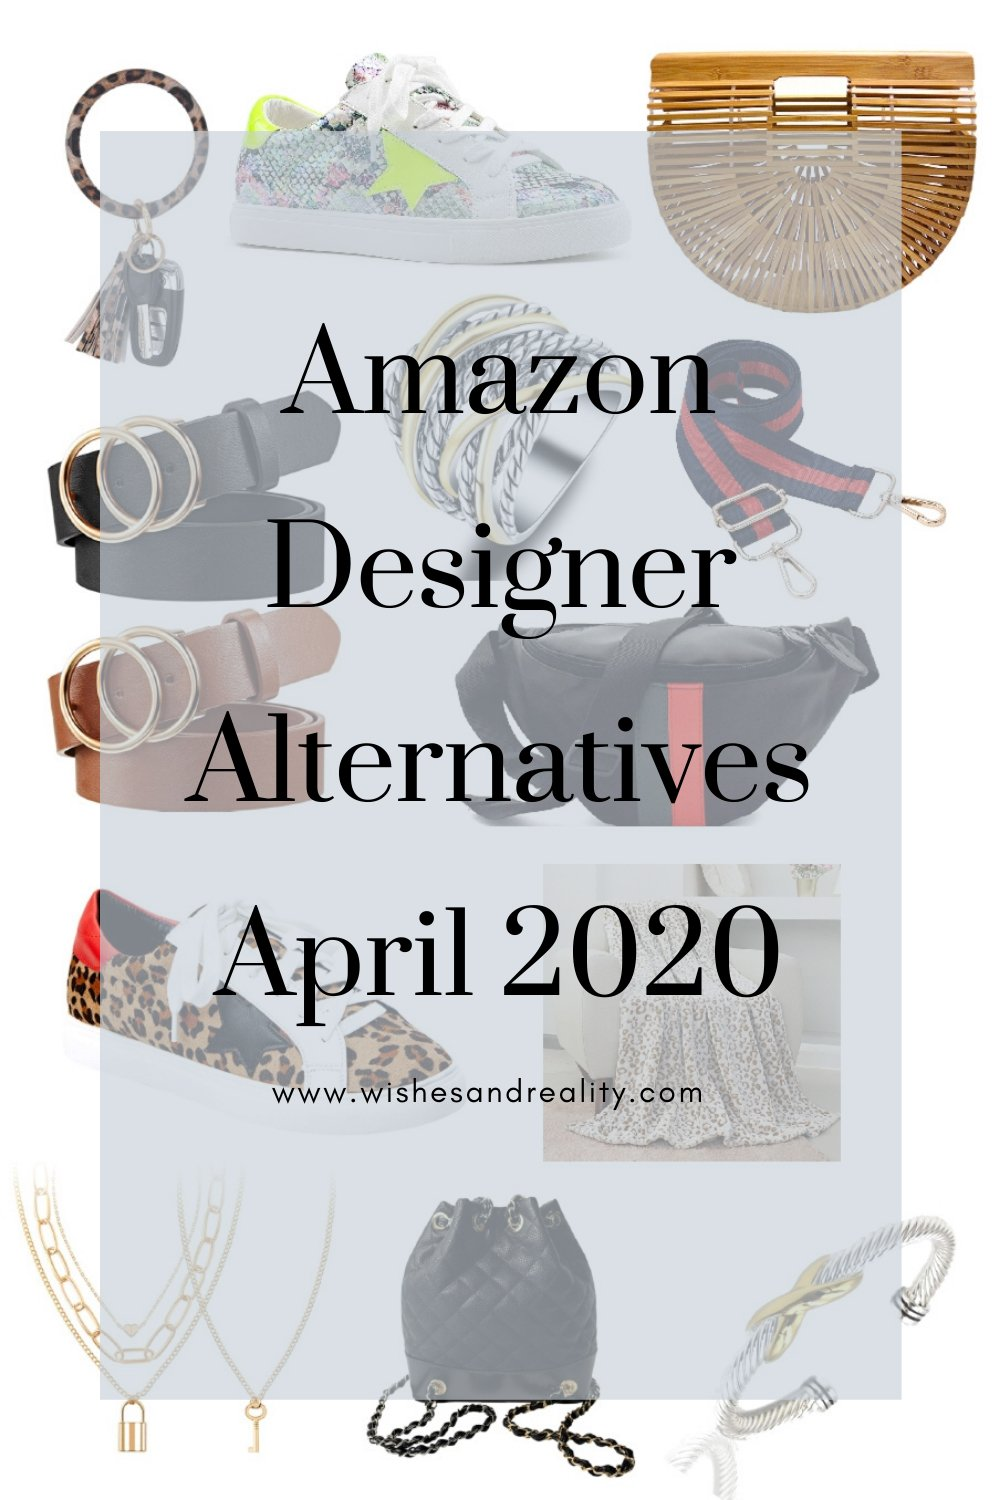 Amazon Designer Alternatives April 2020